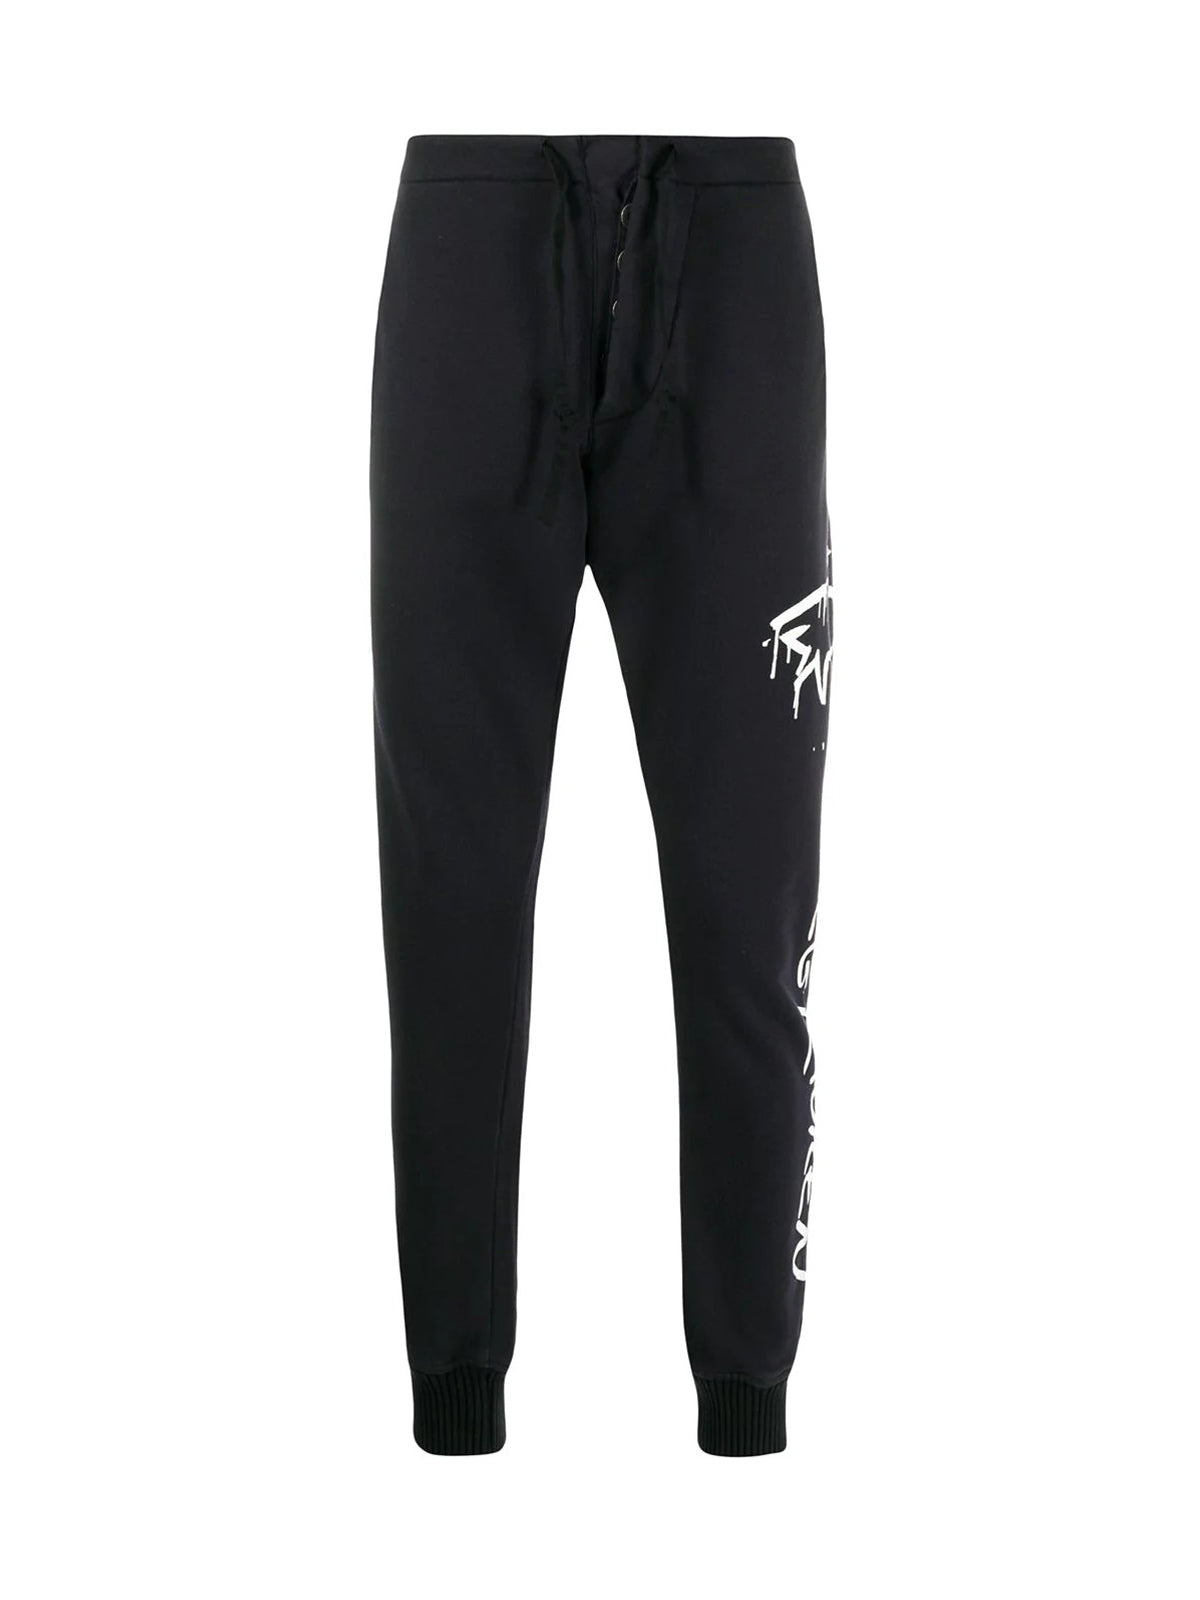 shark-print track trousers